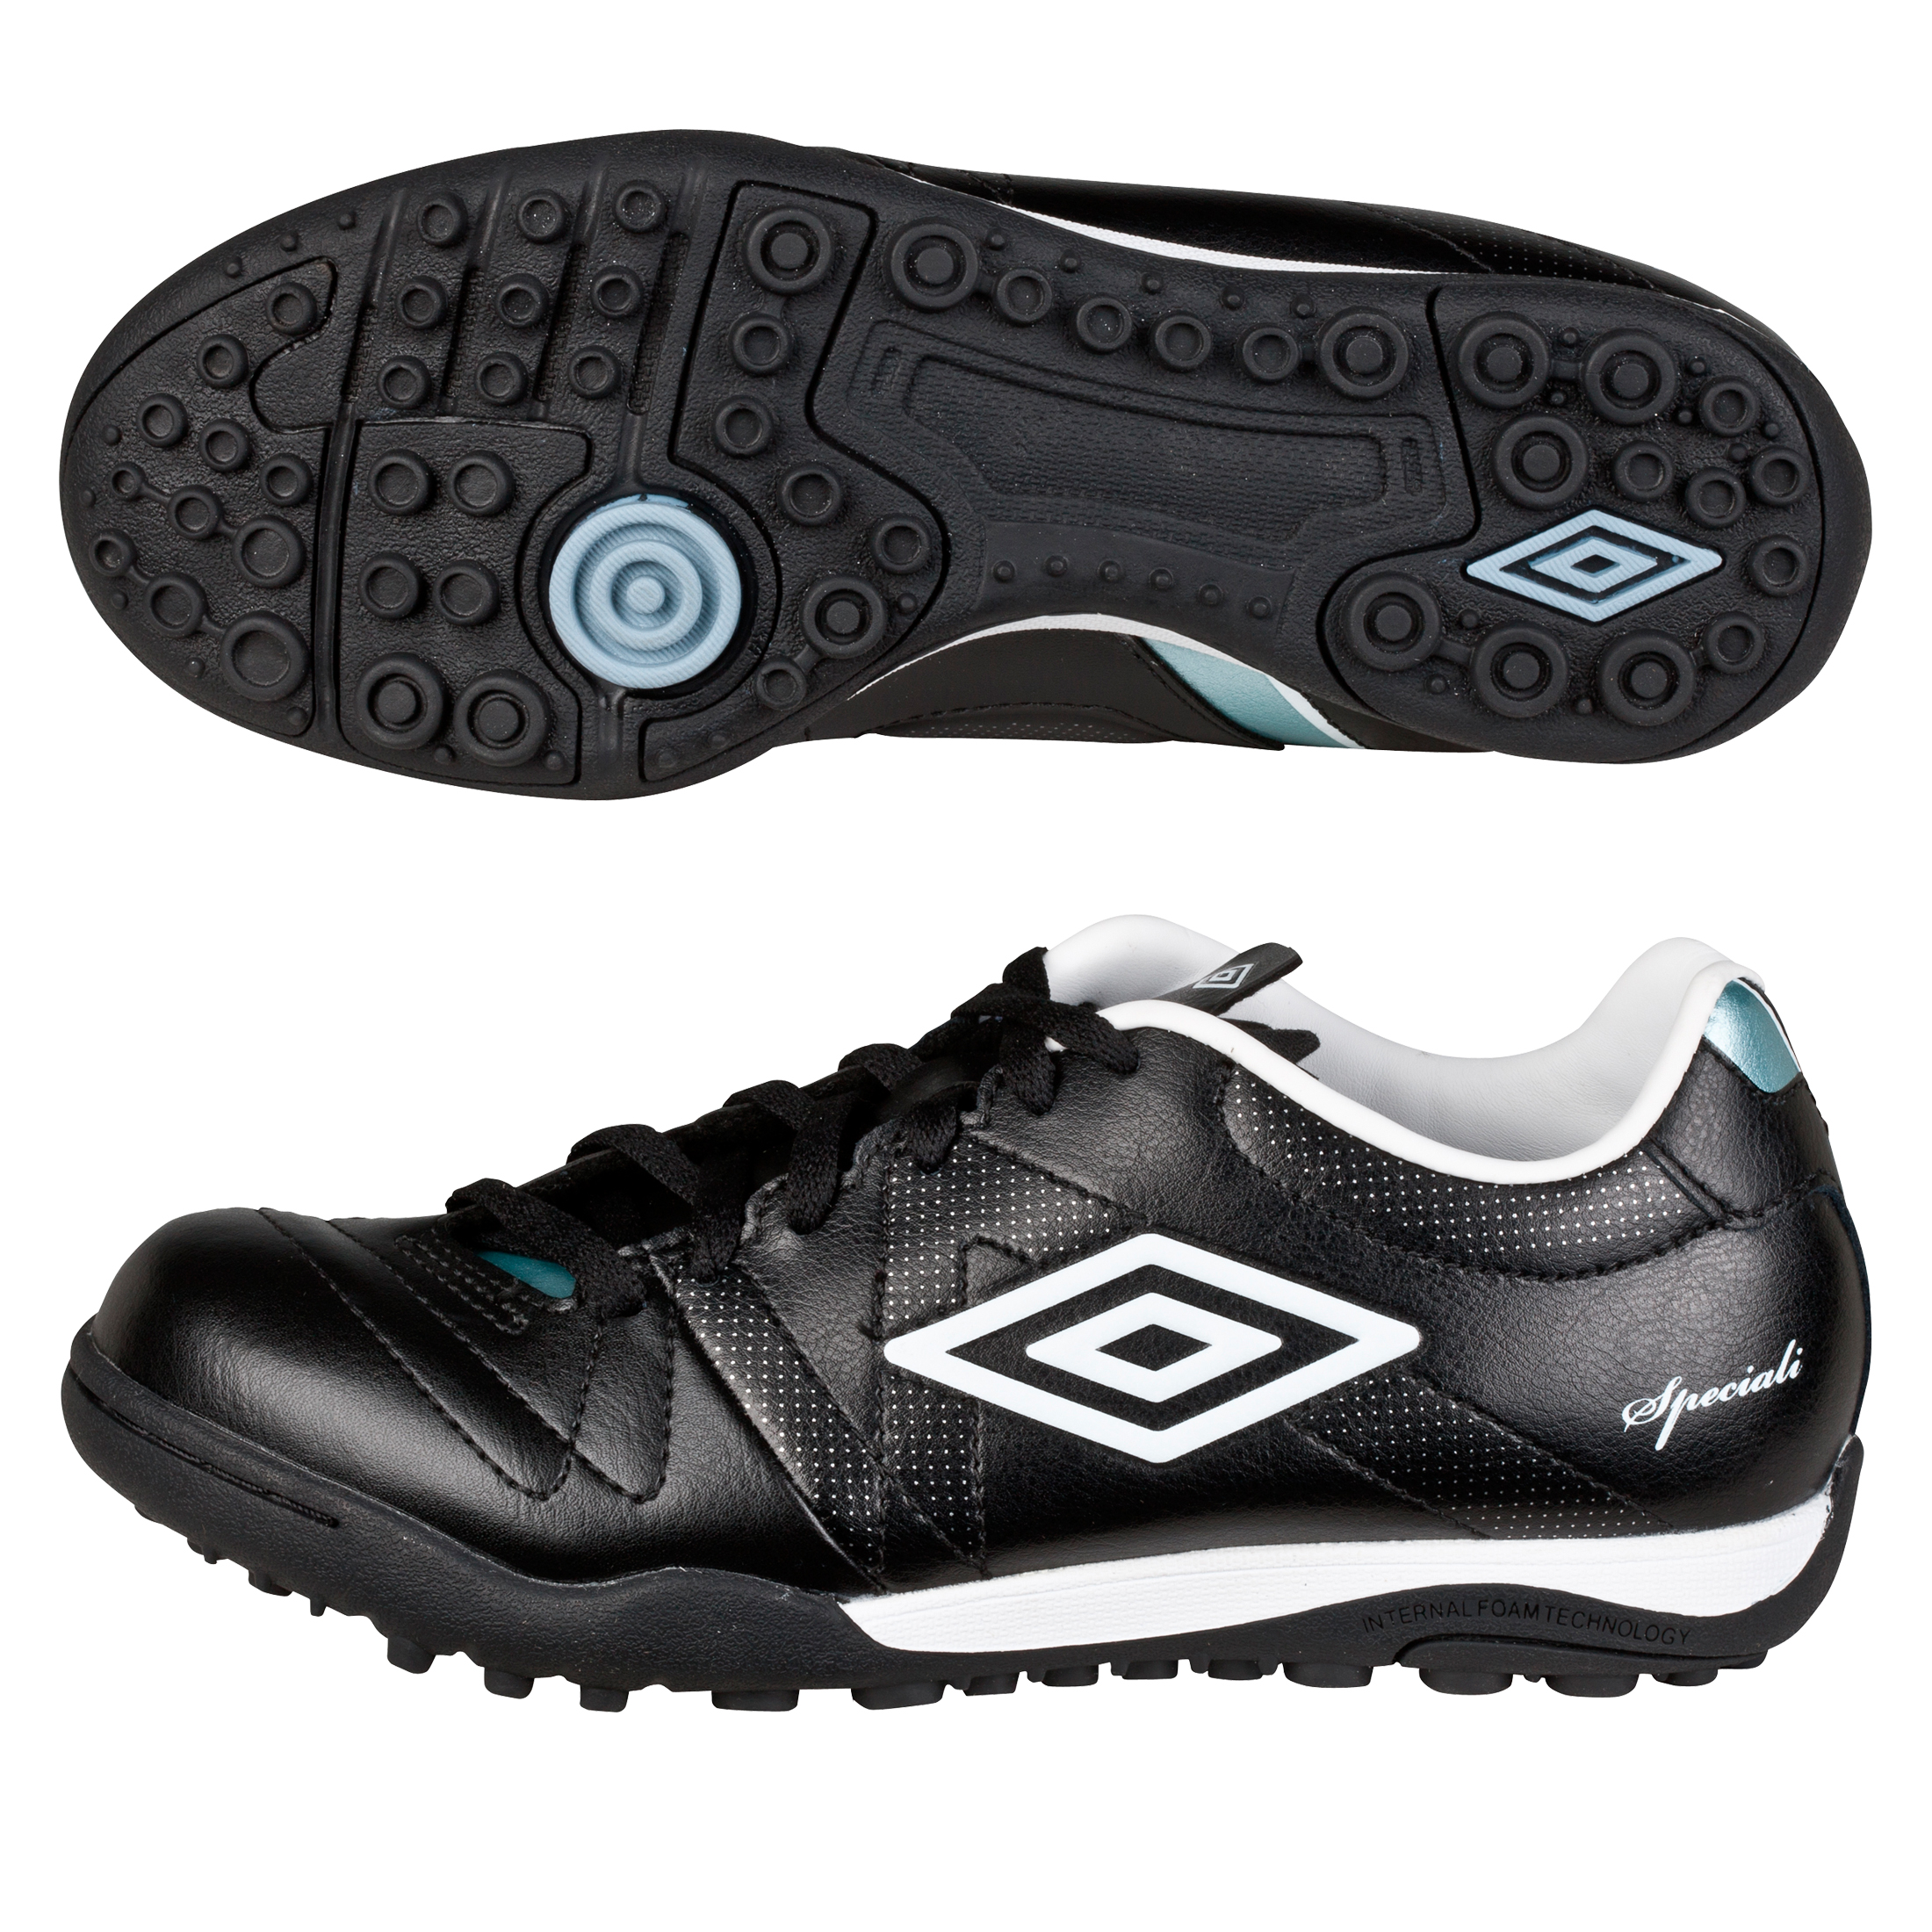 Speciali 3 Cup Astro Turf Black/White/Chrome Kids